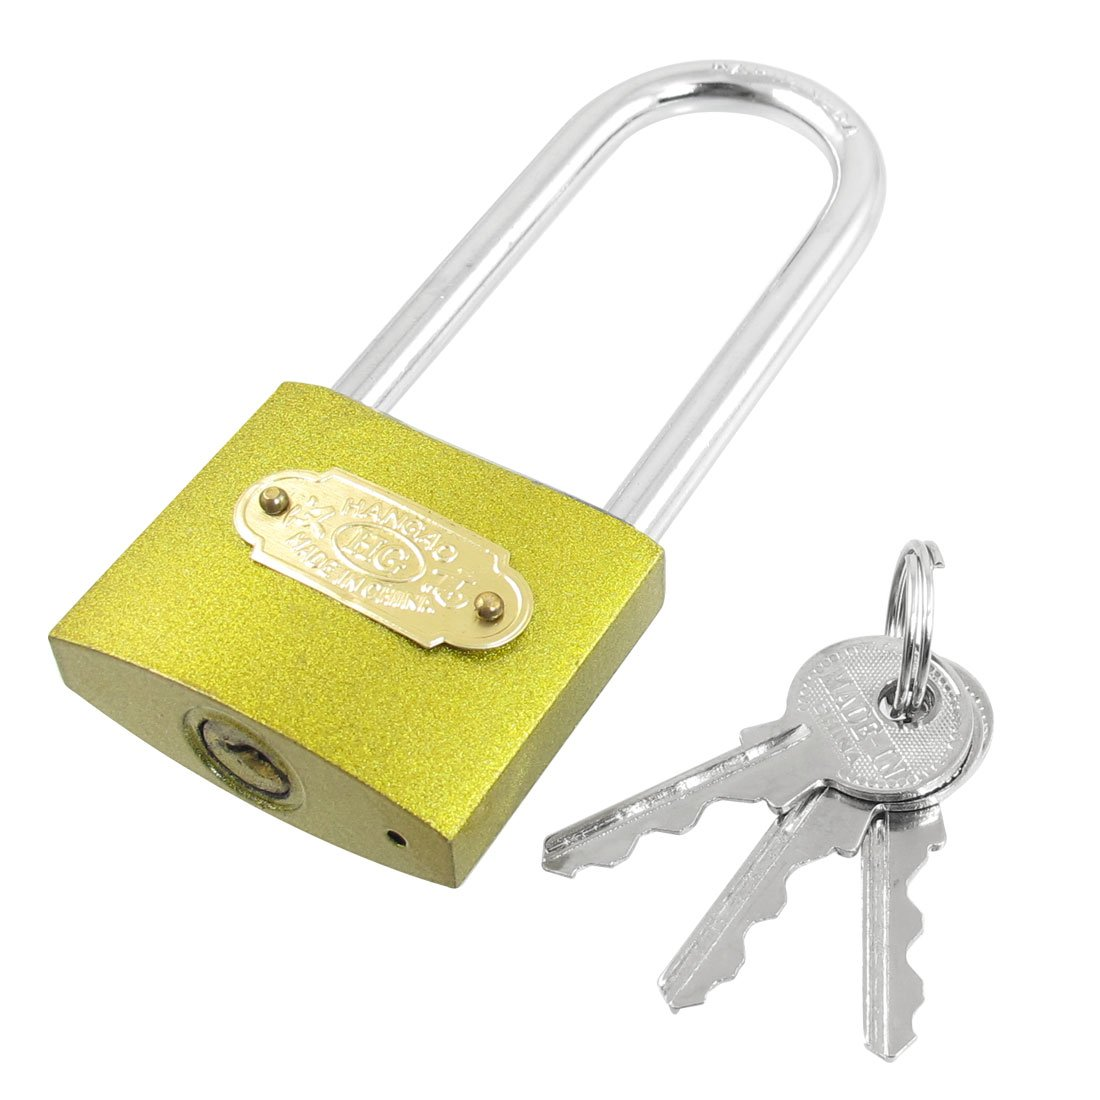 uxcell 50mm Wide Gold Tone Metal Shackle Security Long Padlock 4.5'' Height w 3 Keys